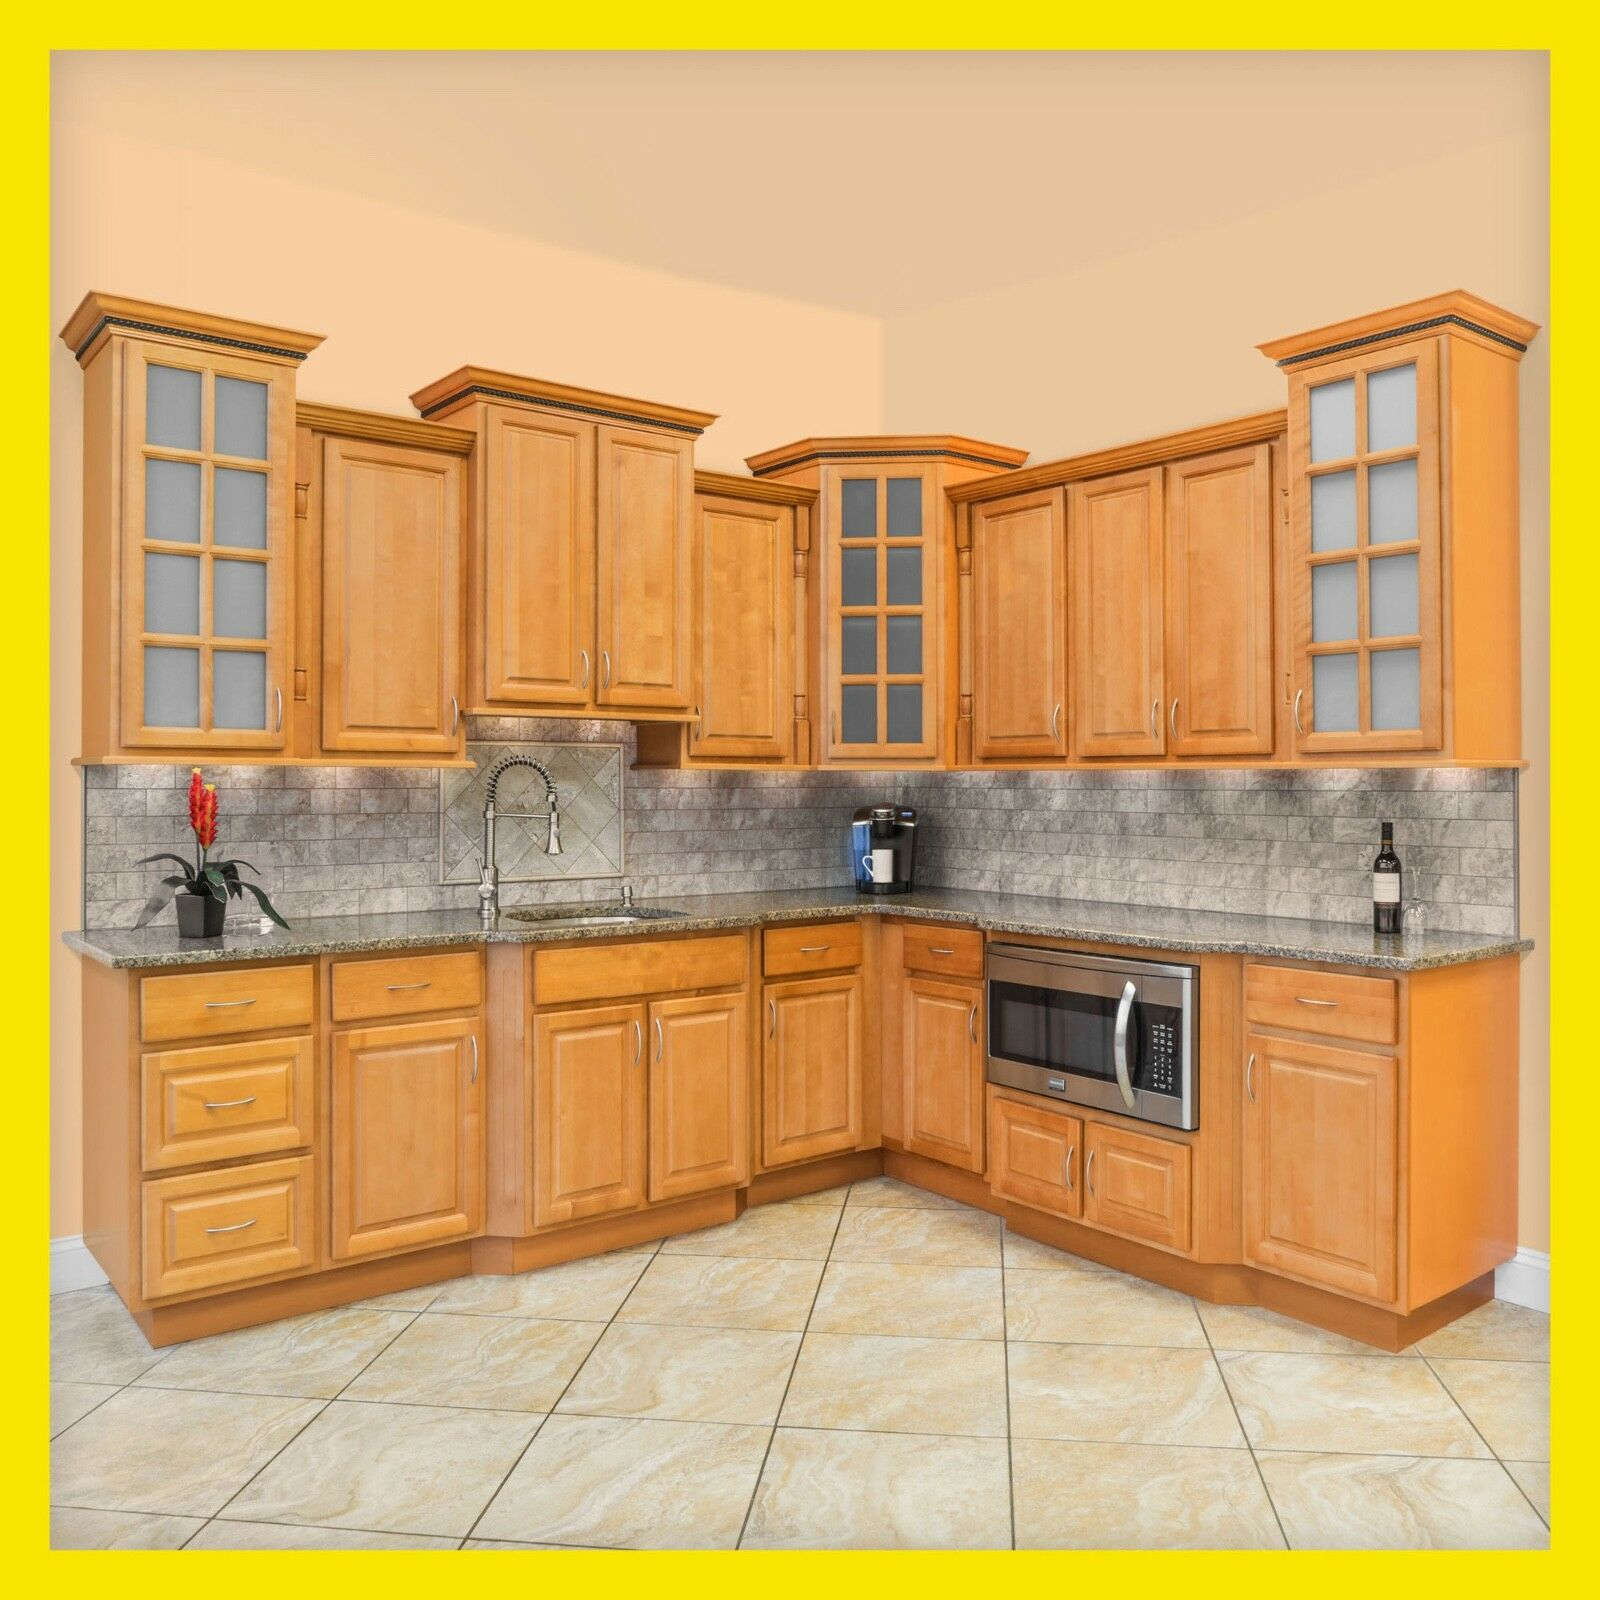 10x10 All Wood Kitchen Cabinets Rta Richmond For Sale Online